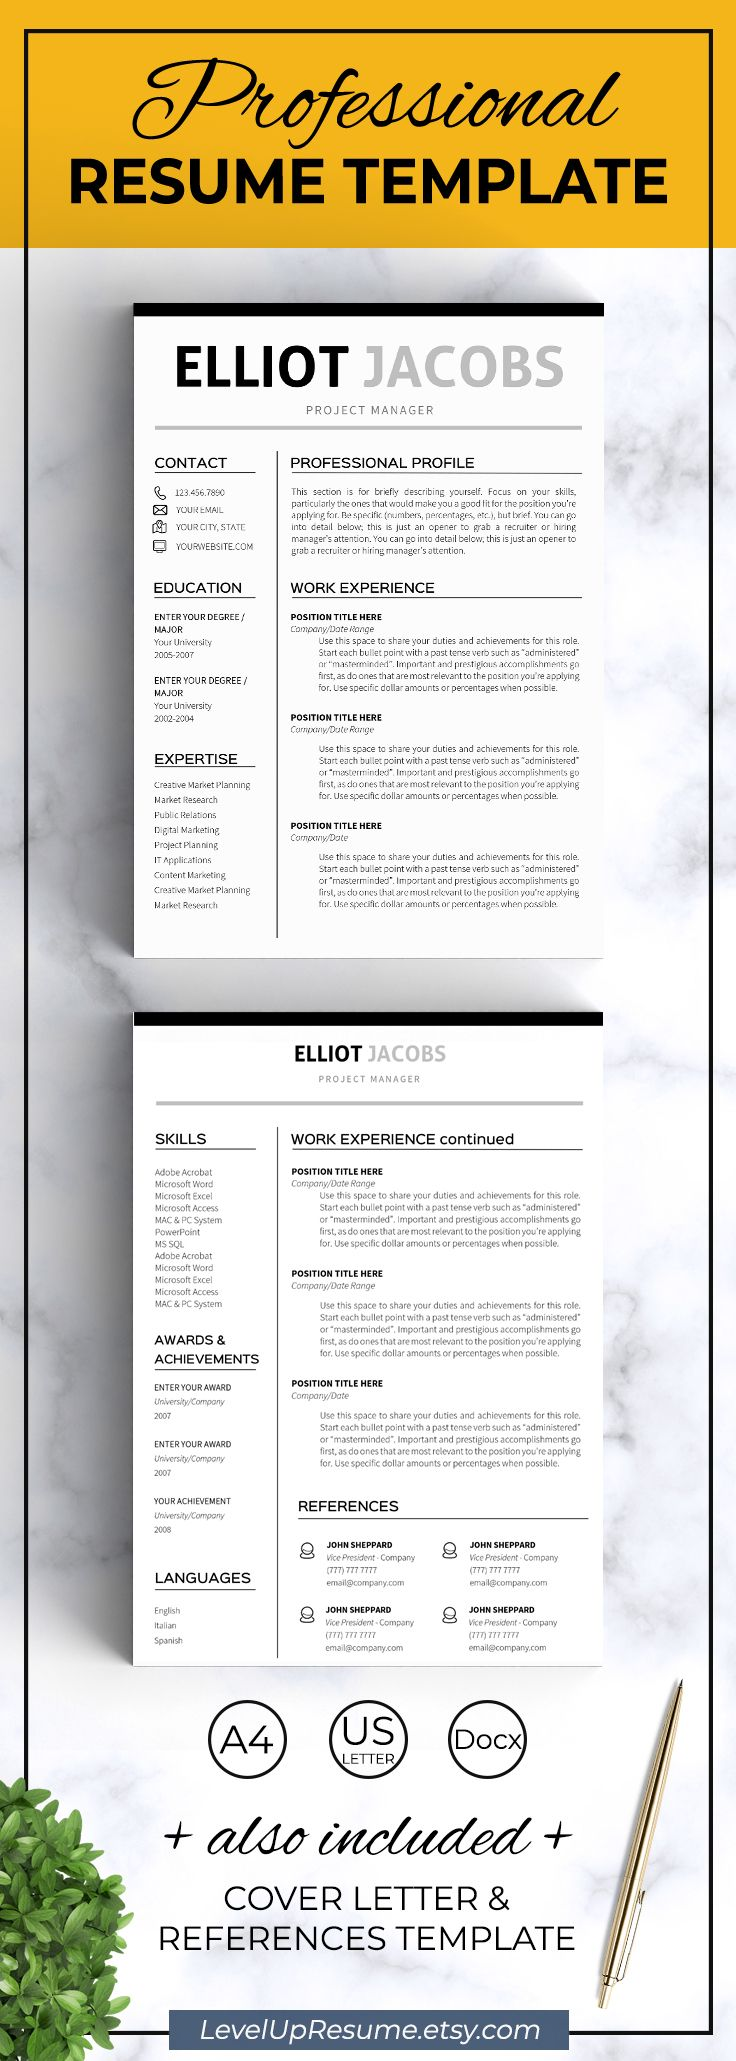 Modern resume template. Professional resume design. Career advice. Job search. Get hired!  Click on the link or save the pin to your board >>>>> #career #career advice #job #jobsearch #resume #resumetemplate #girlboss  . Minimalist Resume template Instant download Clean resume template word Business resume for word 1 2 page resume Man Resume with icons EJ